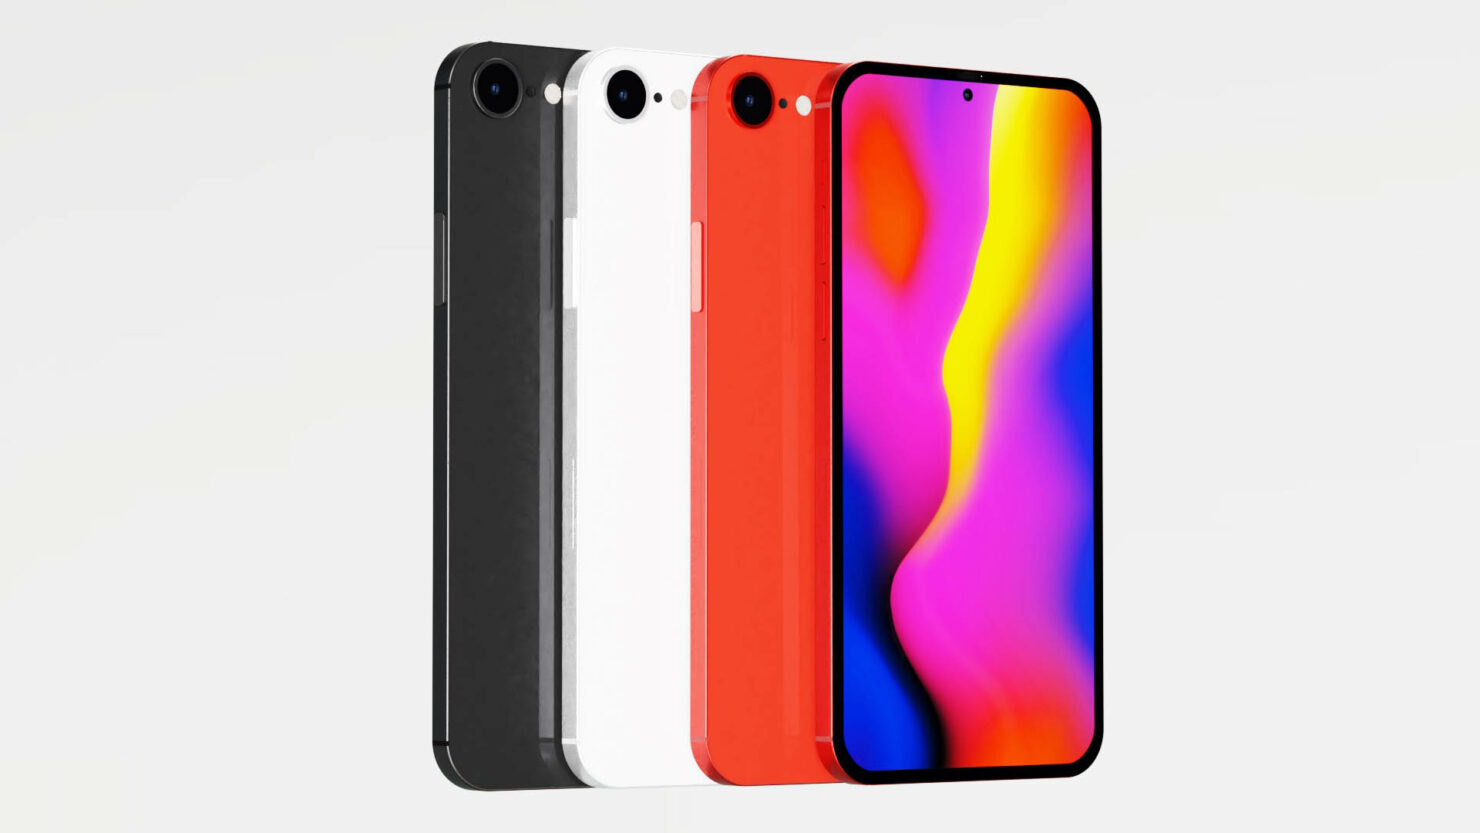 Apple Might Use a Punch-Hole Display Instead of a Notch for Some 2022 iPhone Models